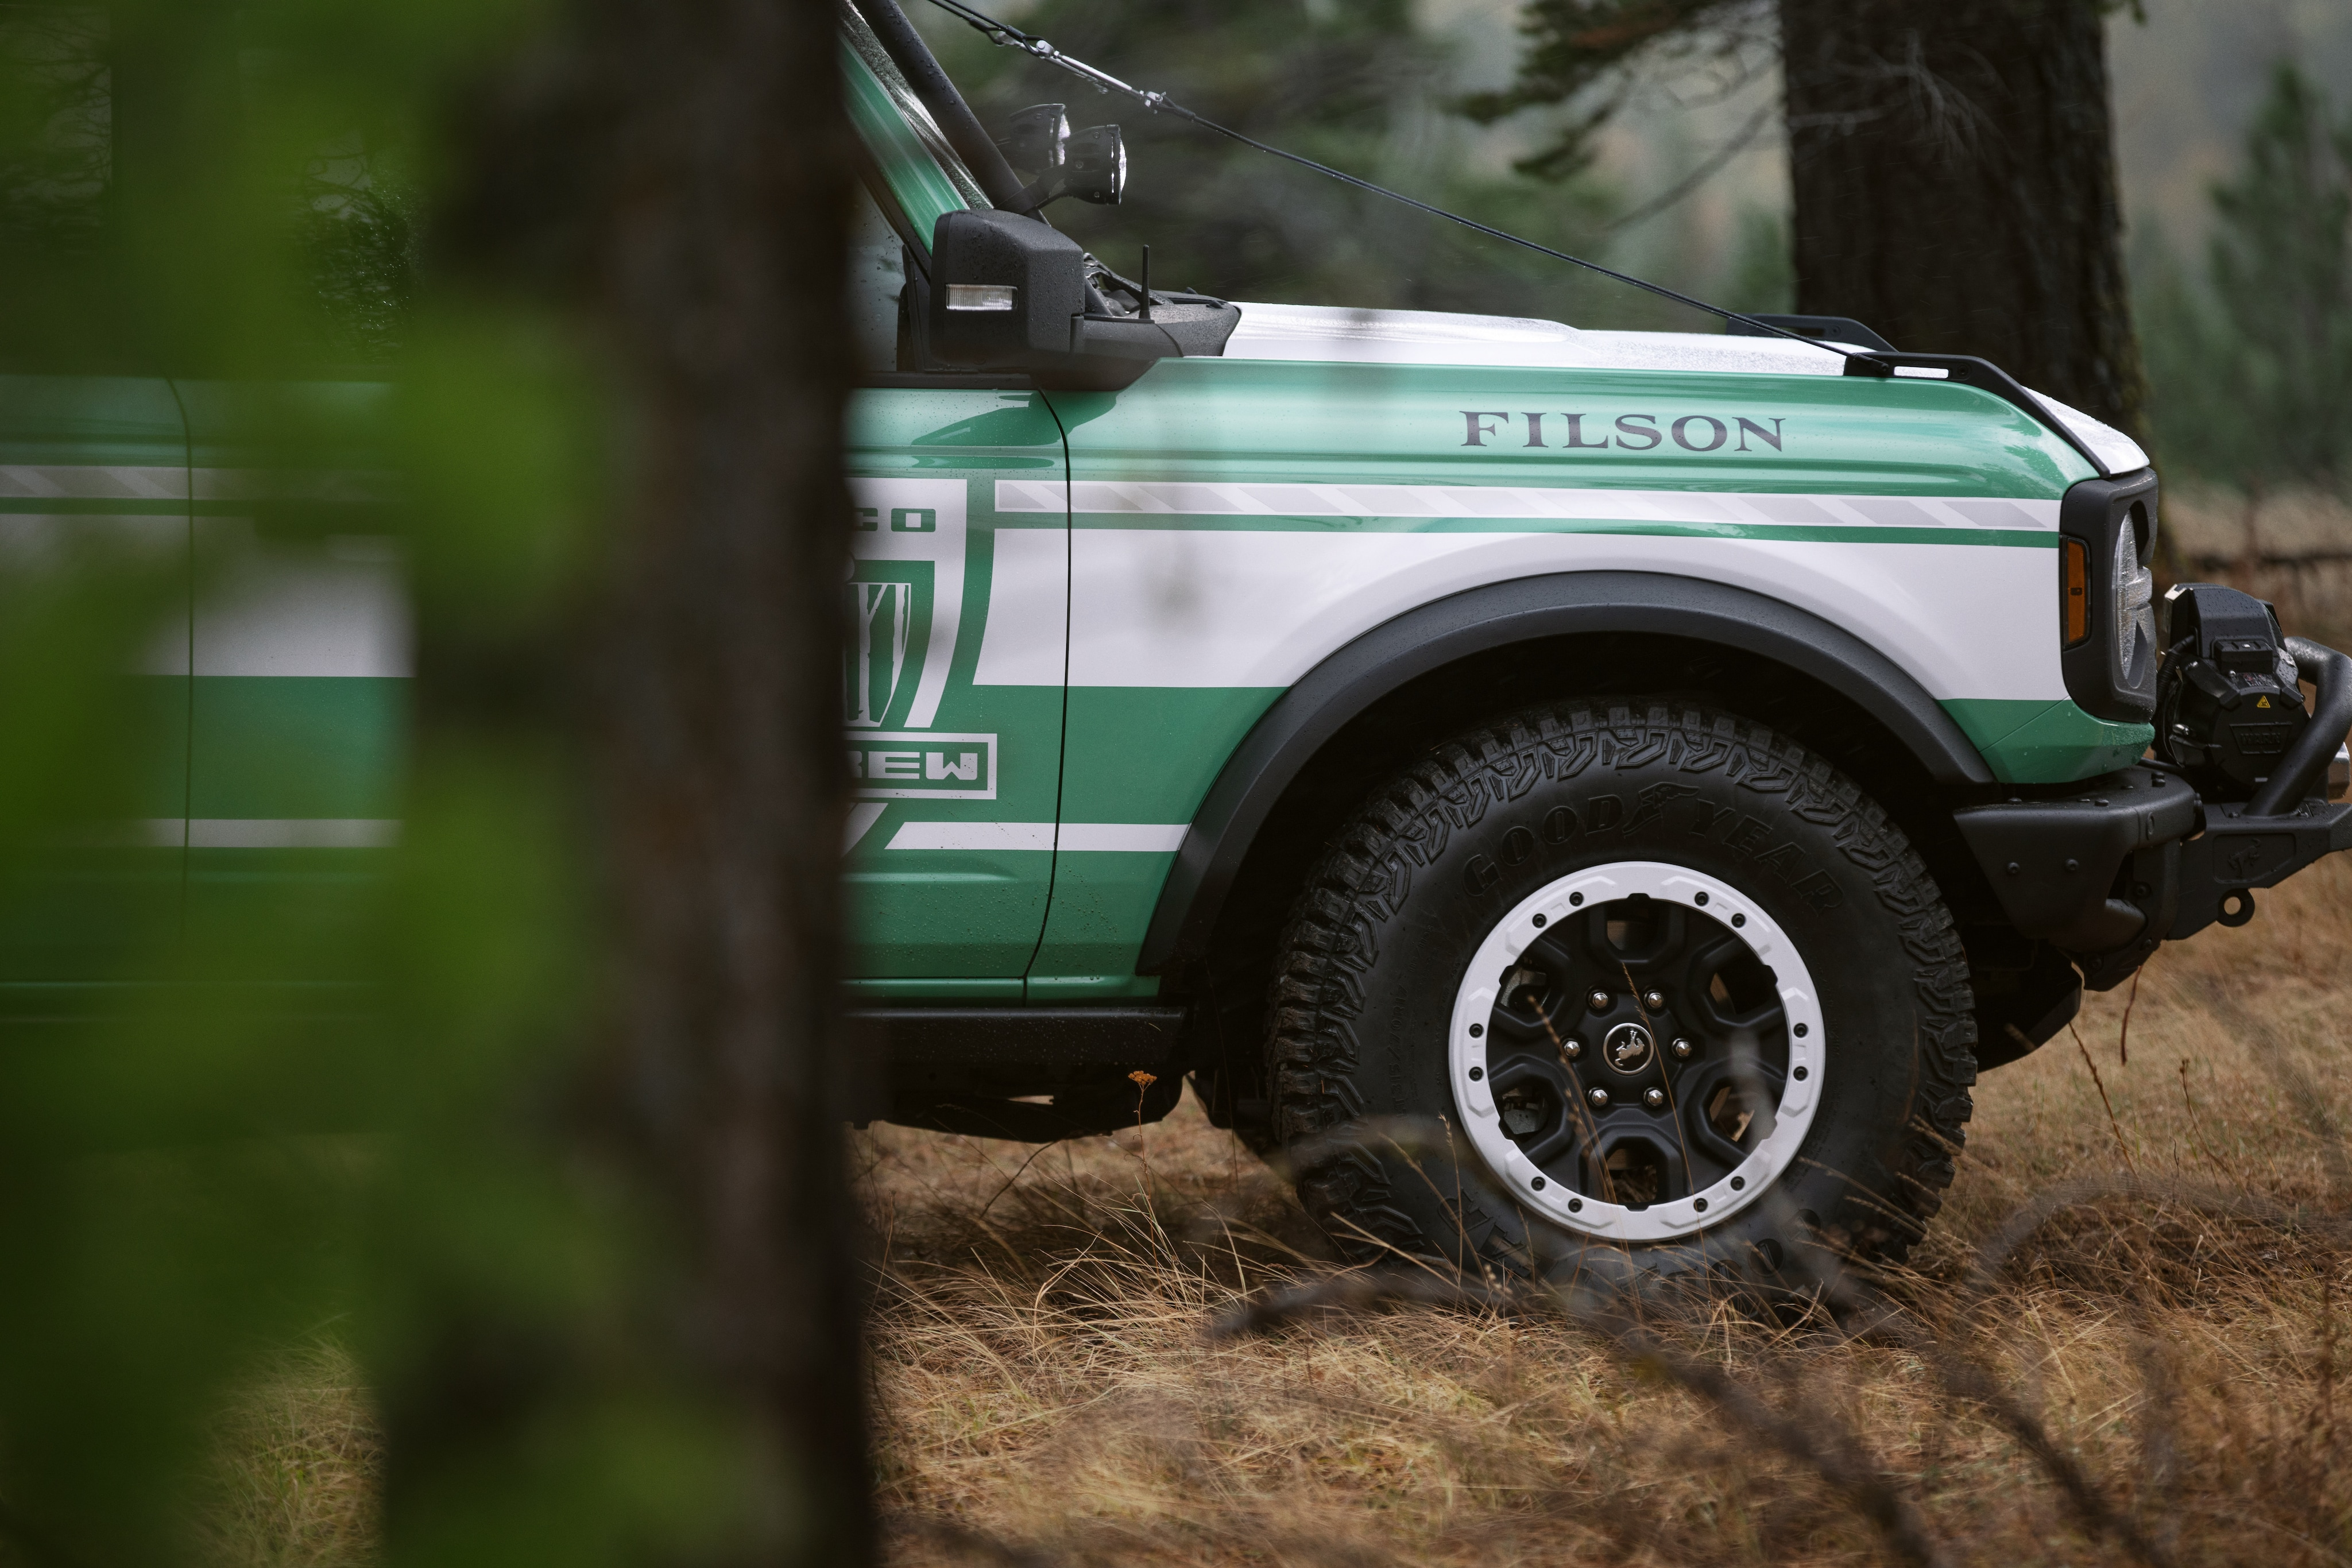 Ford Unveils the Bronco + Filson Wildland Fire Rig | Havelock, NC